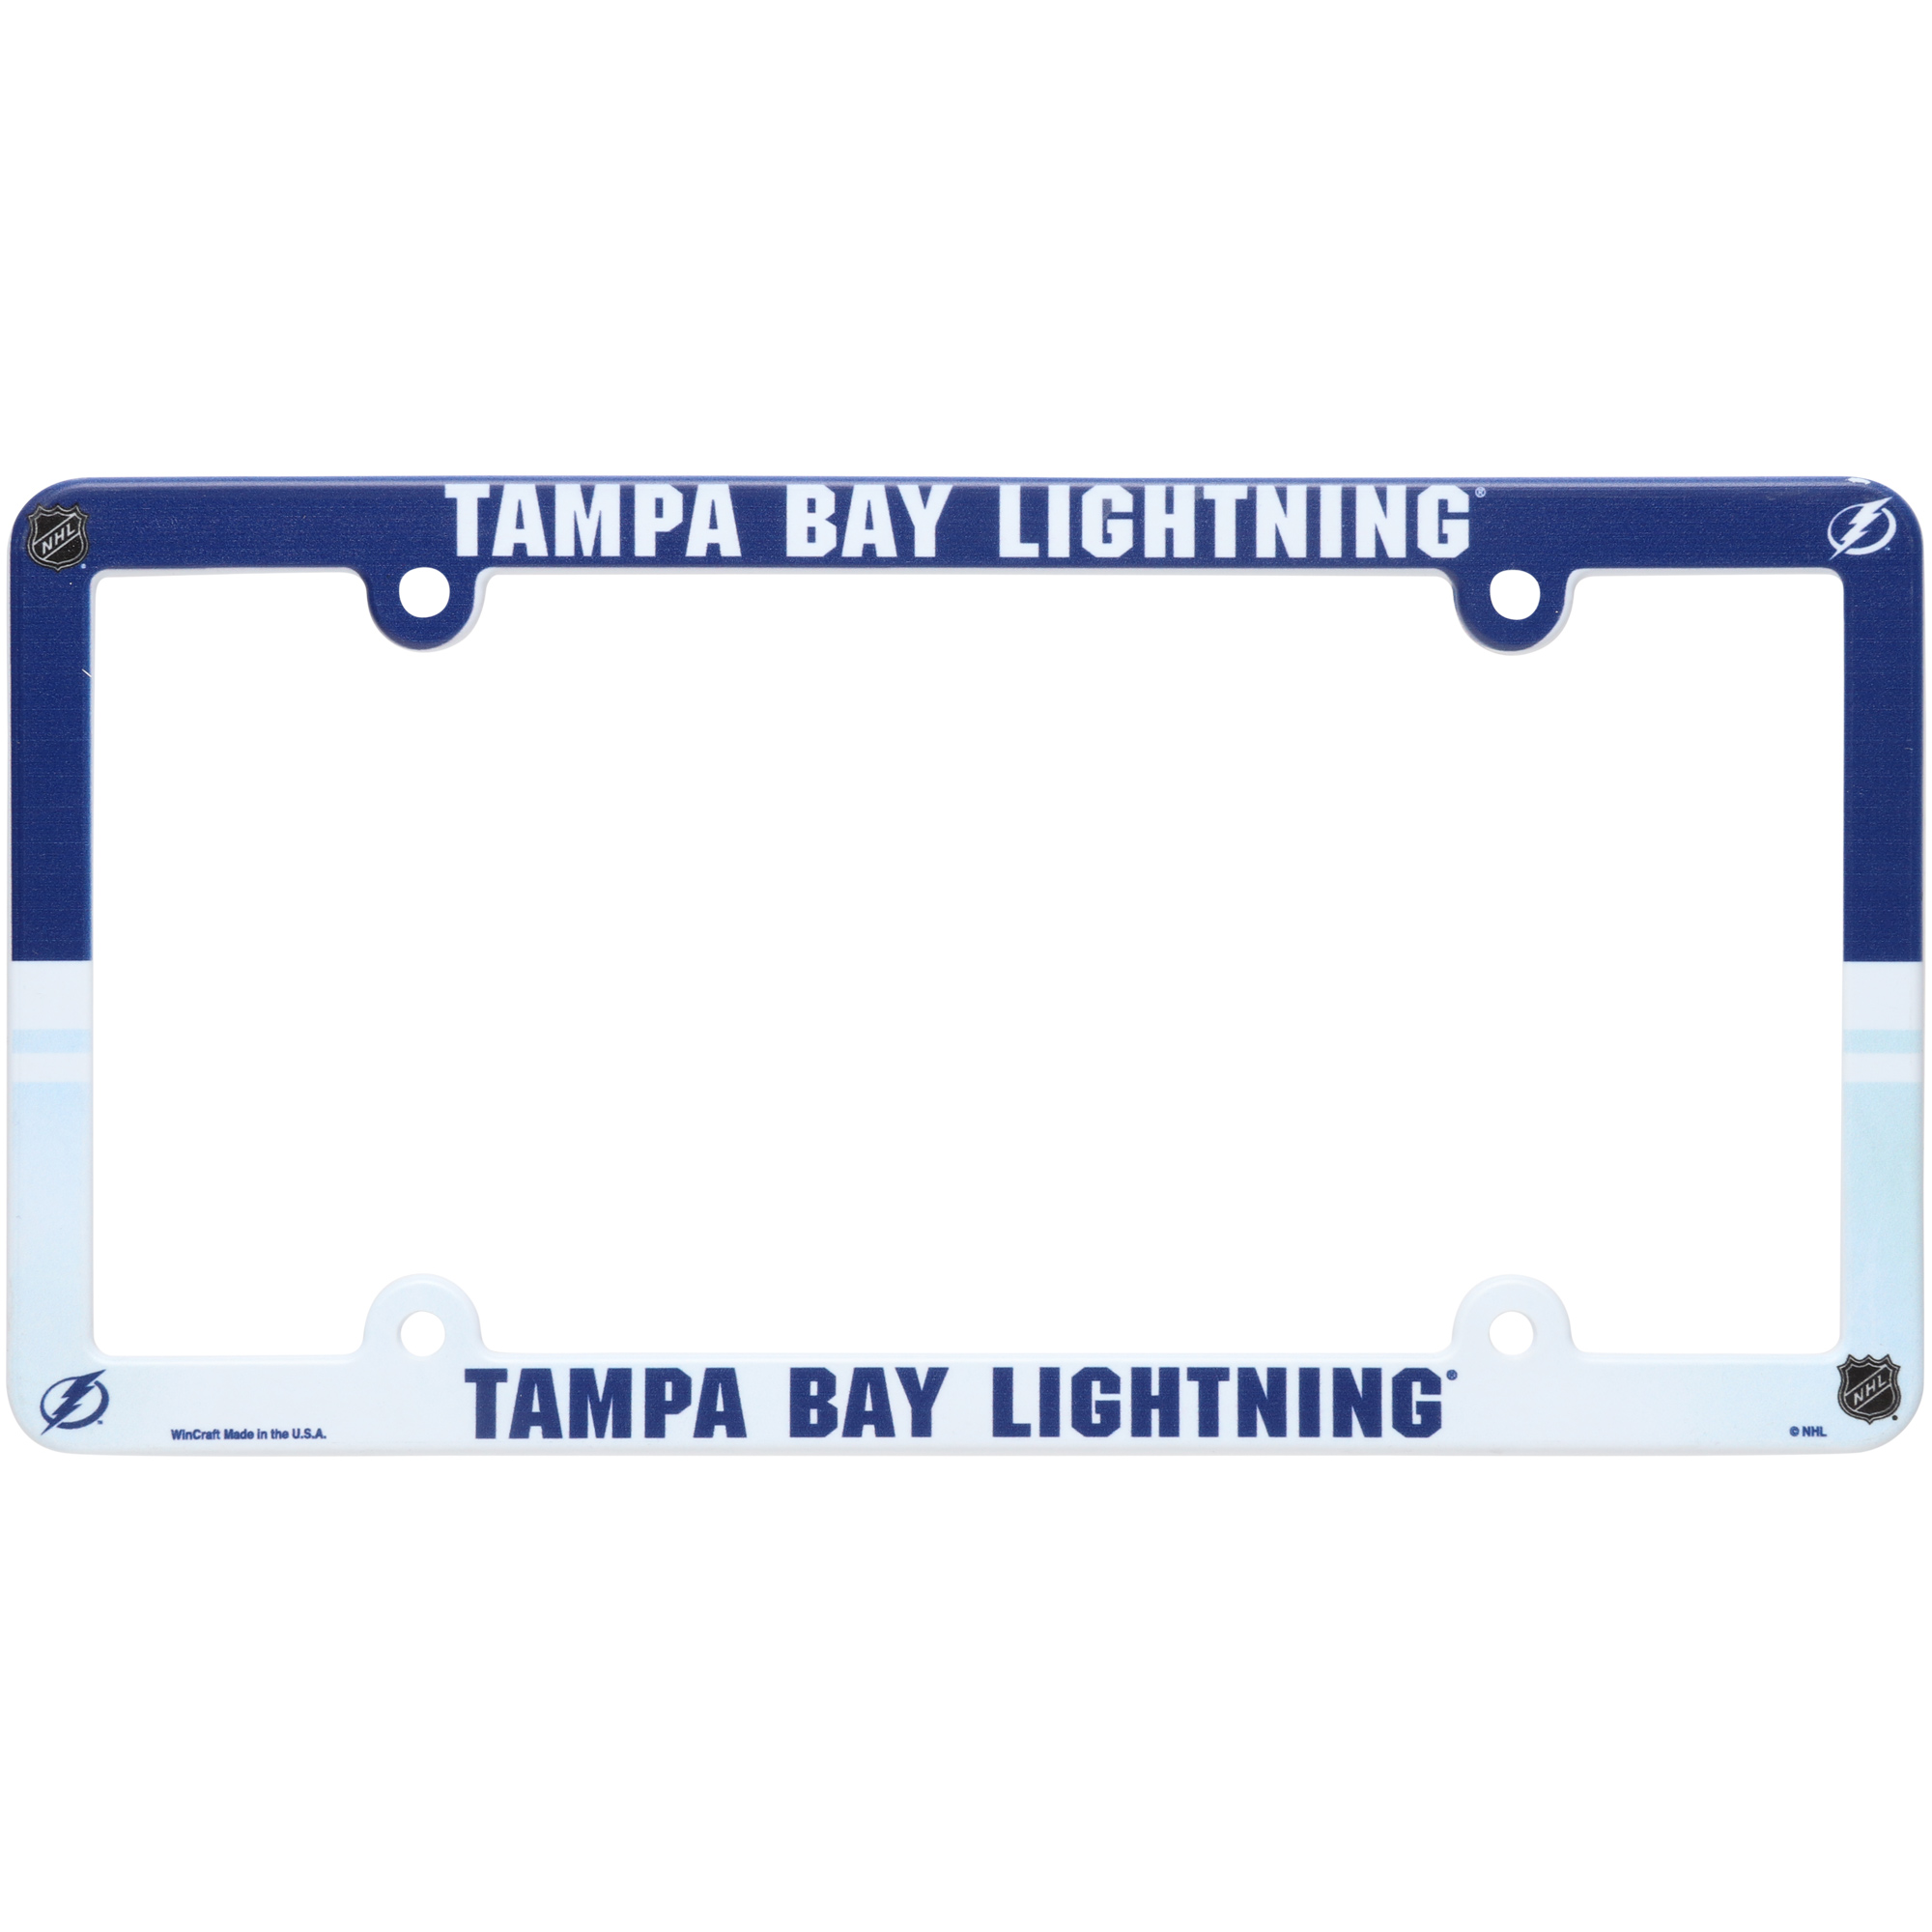 Tampa Bay Lightning Plastic License Plate Frame - No Size